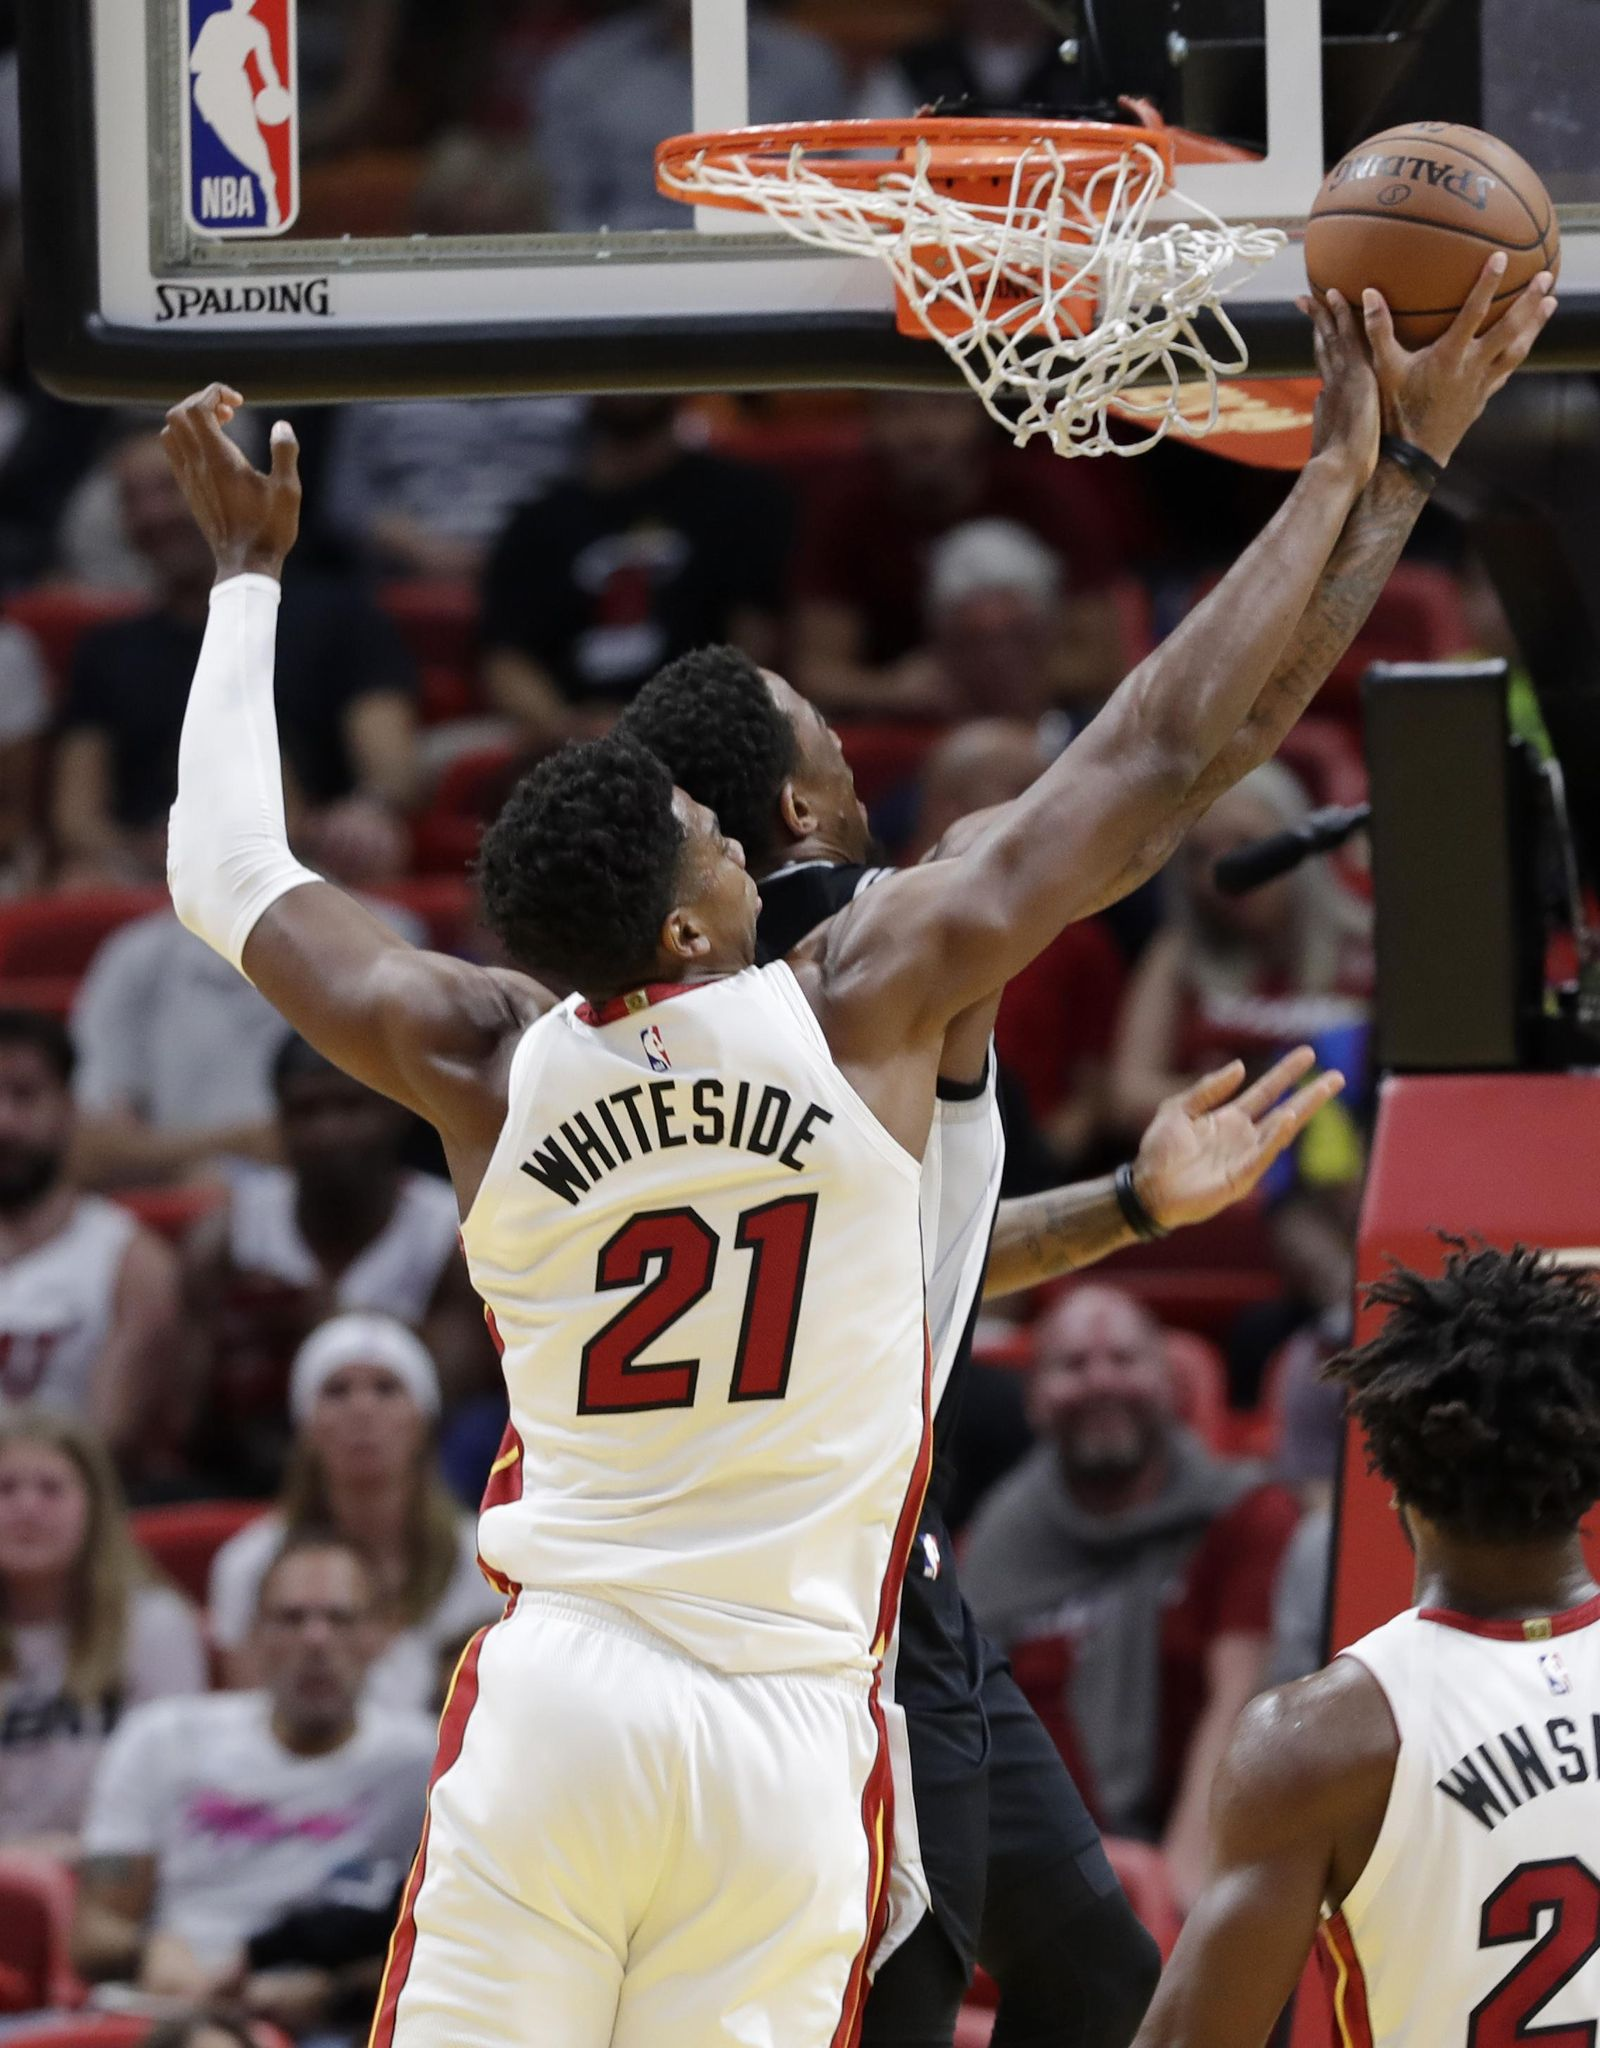 Whiteside dominates, Heat top Spurs 95-88